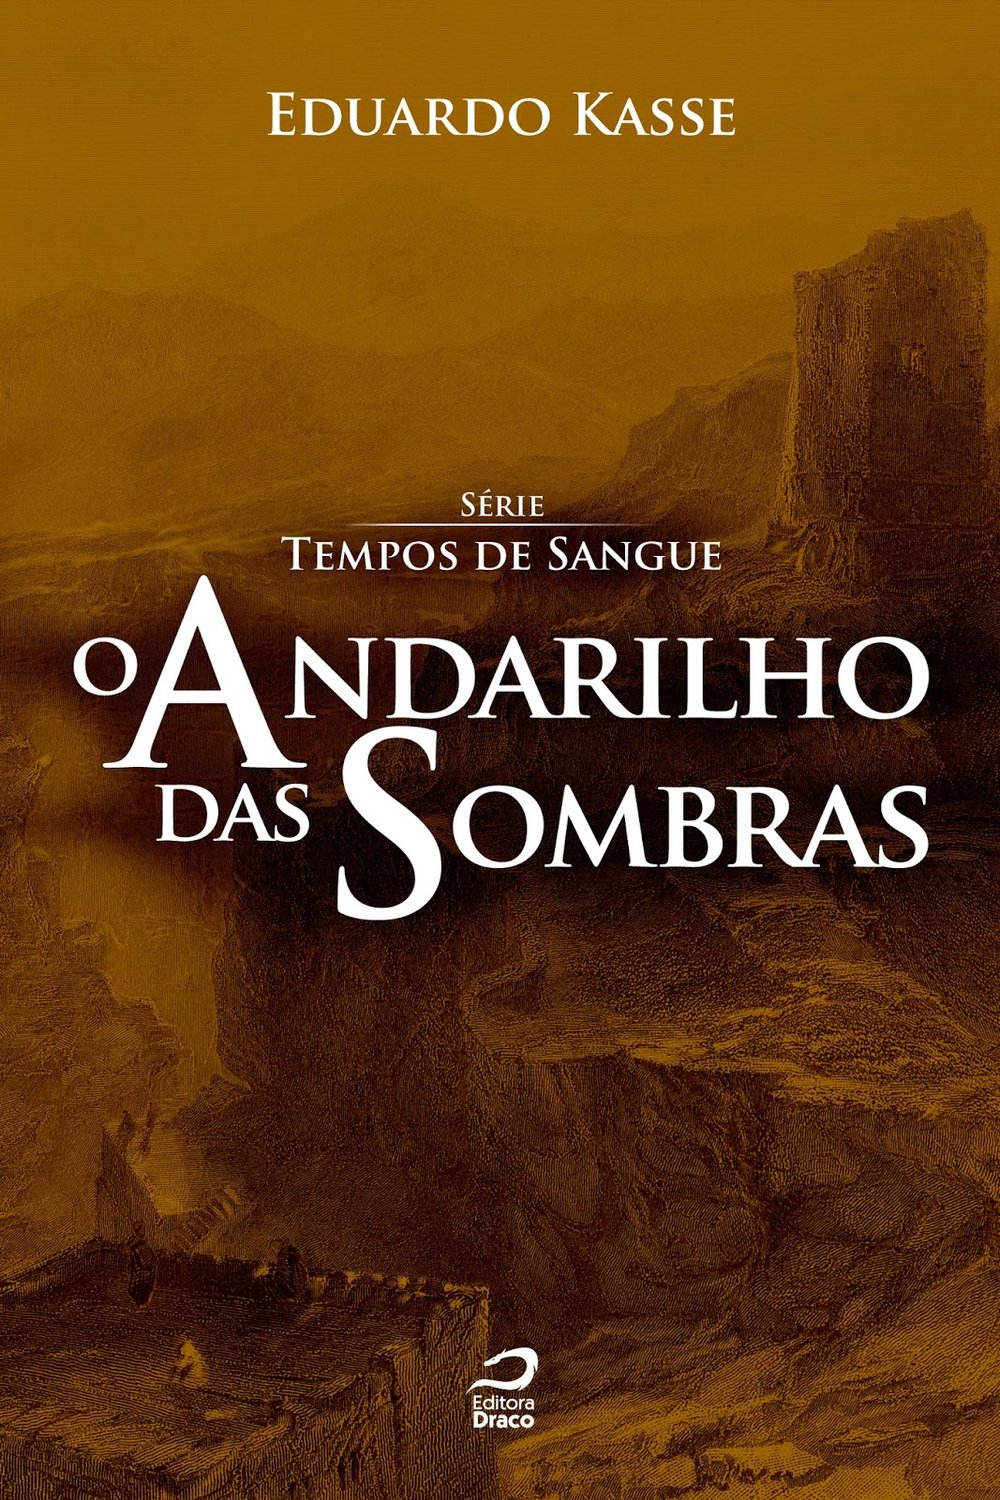 capa do livro retirada do Google